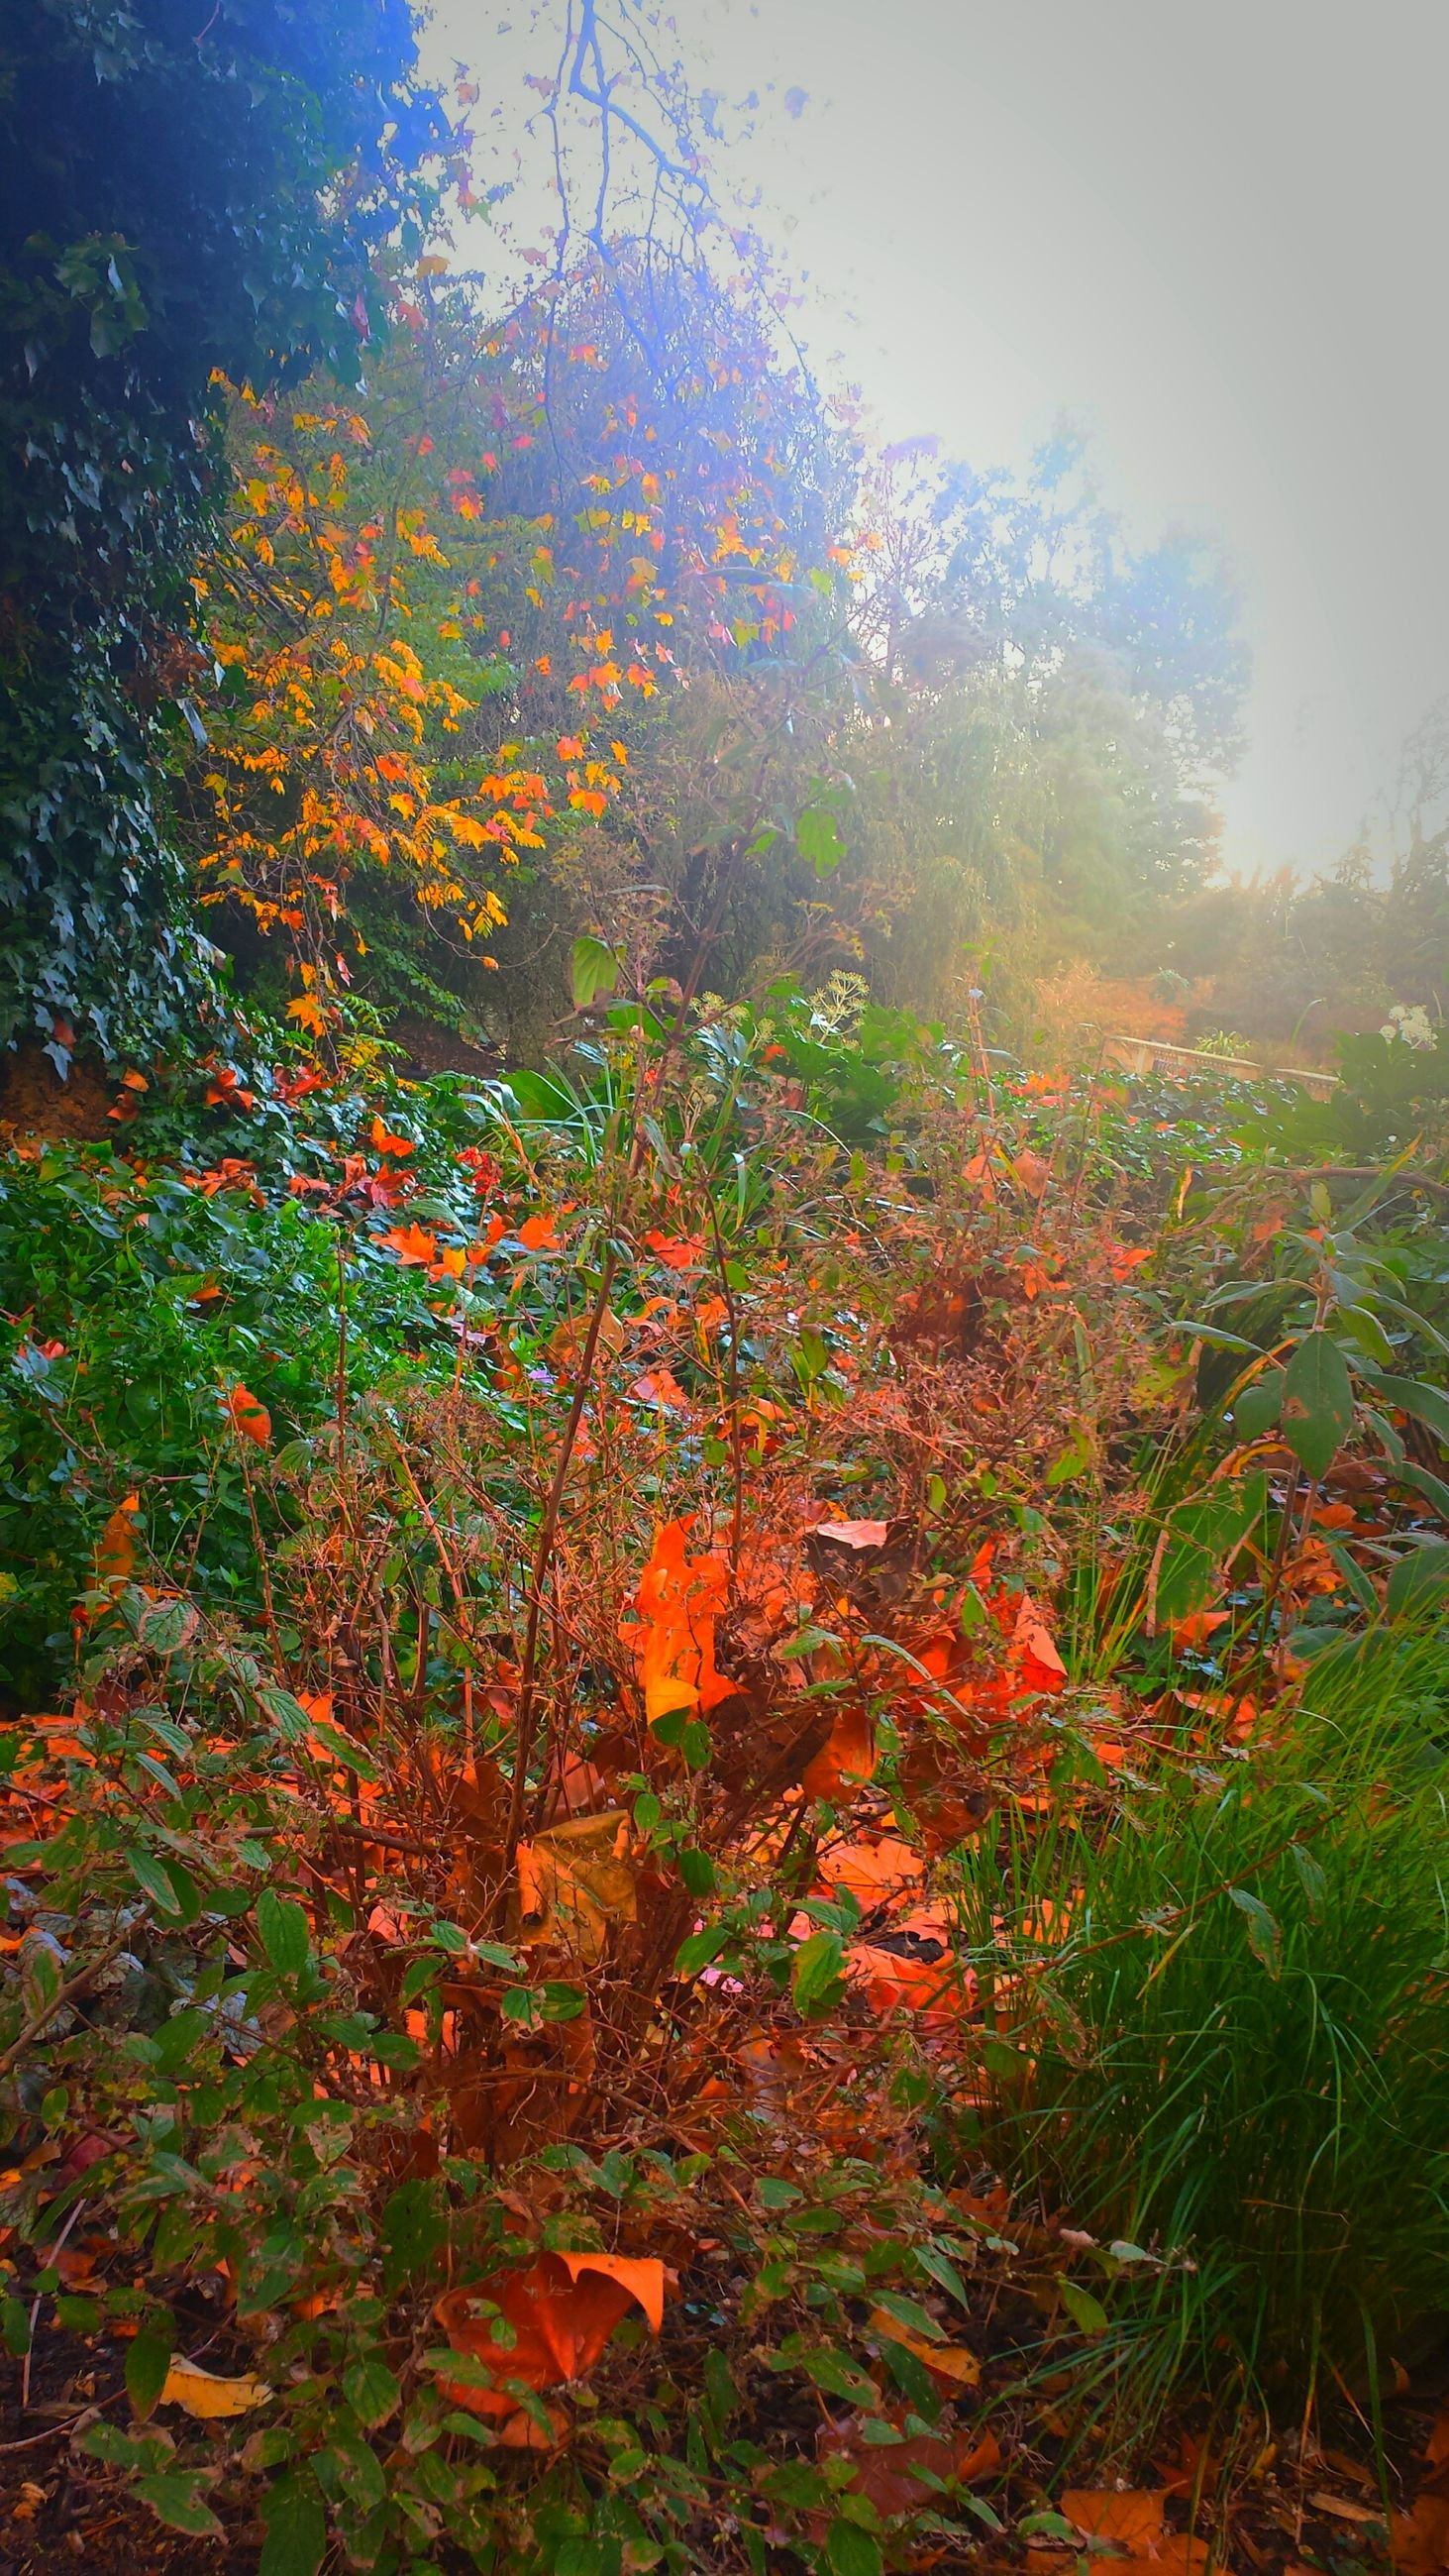 growth, tree, beauty in nature, nature, orange color, plant, autumn, sunlight, tranquility, flower, leaf, season, freshness, change, branch, field, tranquil scene, outdoors, no people, growing